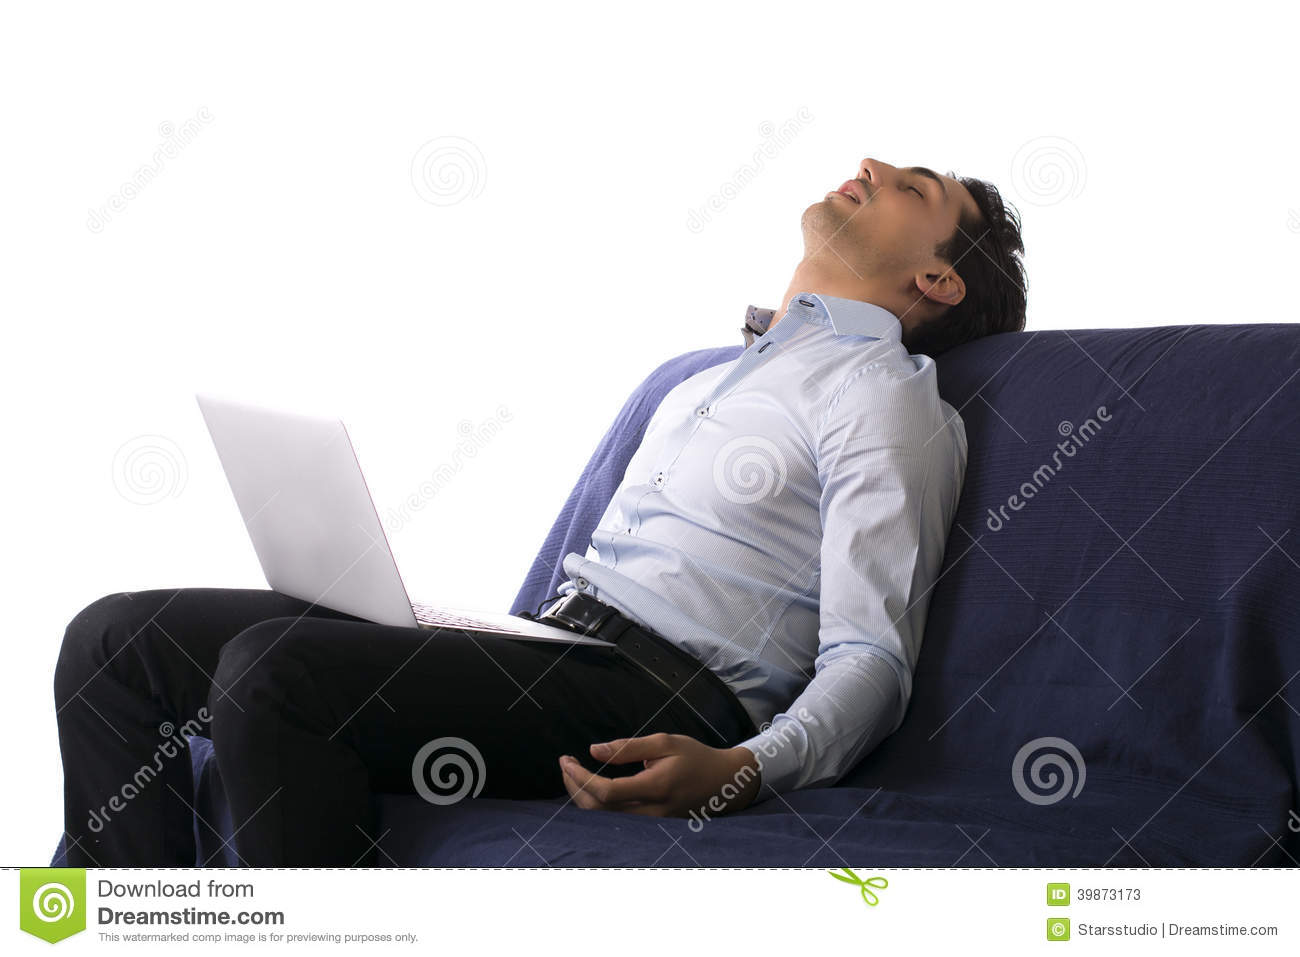 Phenomenal Young Man Fell Asleep On Couch White Working On Laptop Unemploymentrelief Wooden Chair Designs For Living Room Unemploymentrelieforg